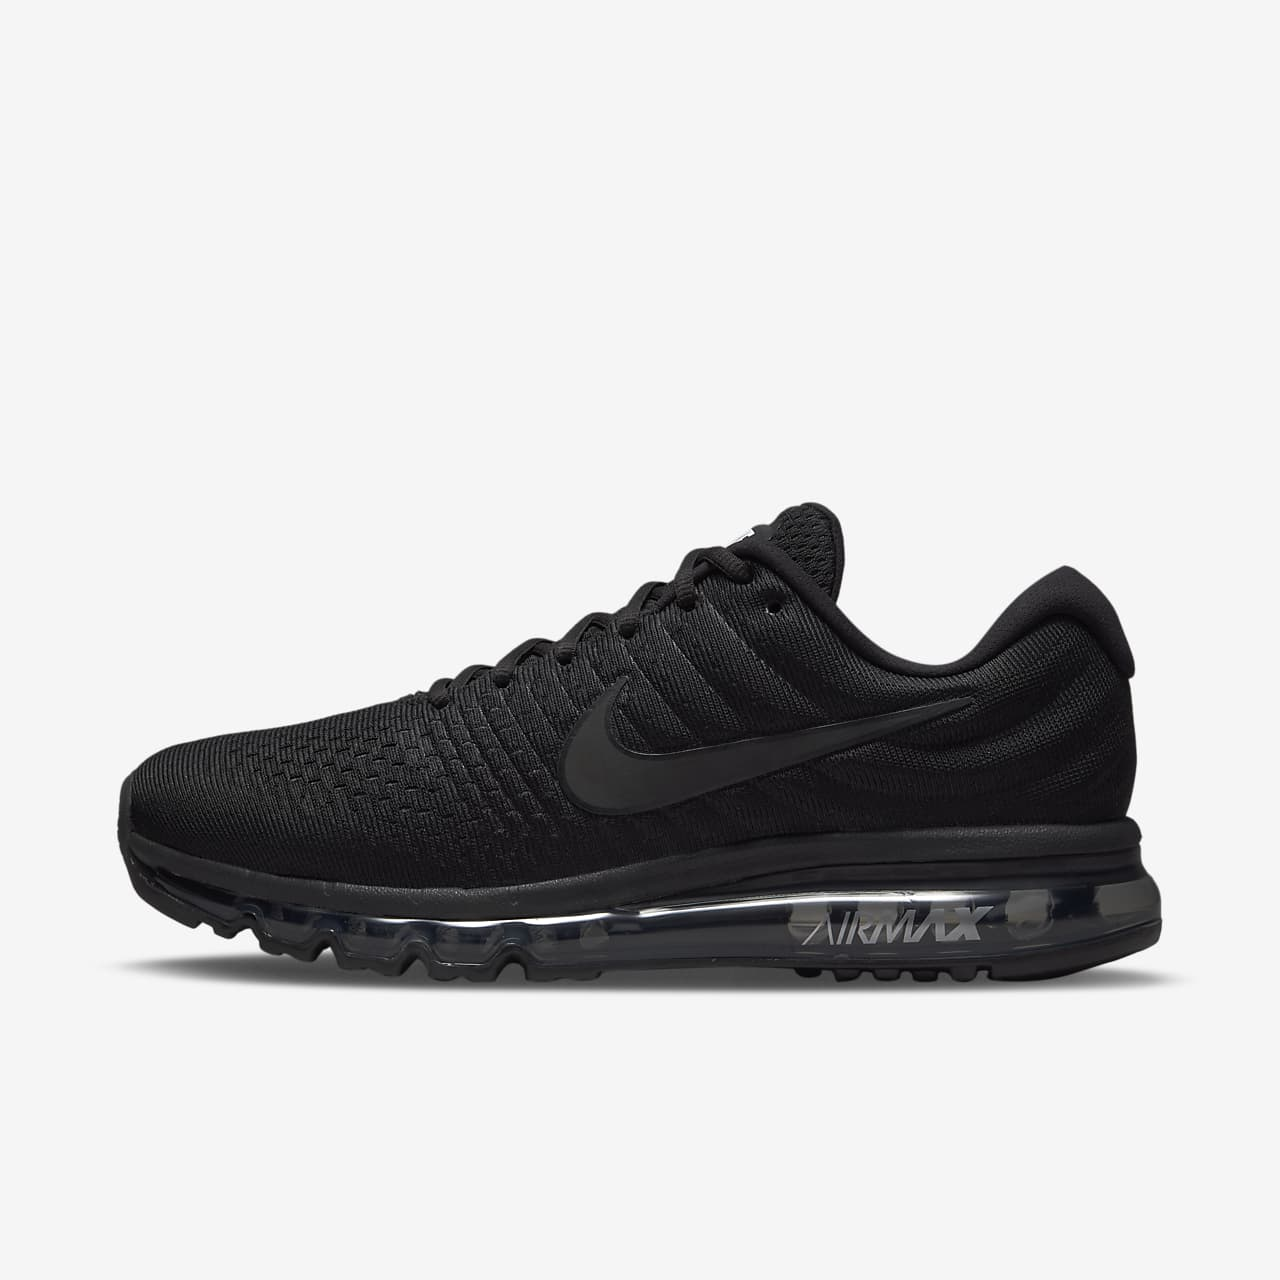 nike air max 2015 mens running shoe $190 000